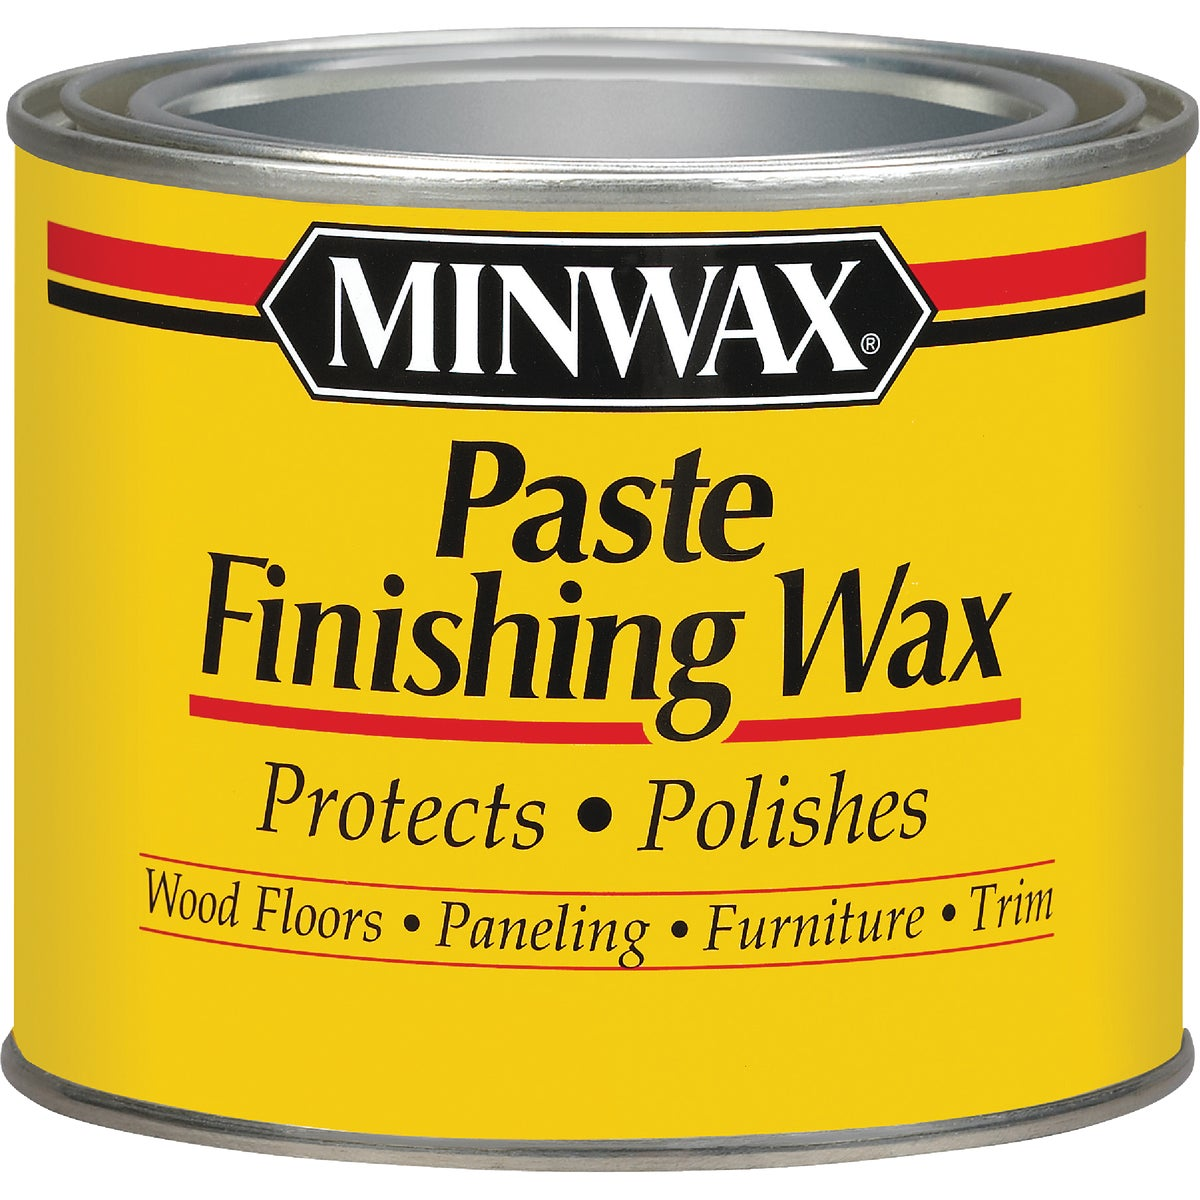 1LB SPCIAL FINISHING WAX - 786004444 by Minwax Company